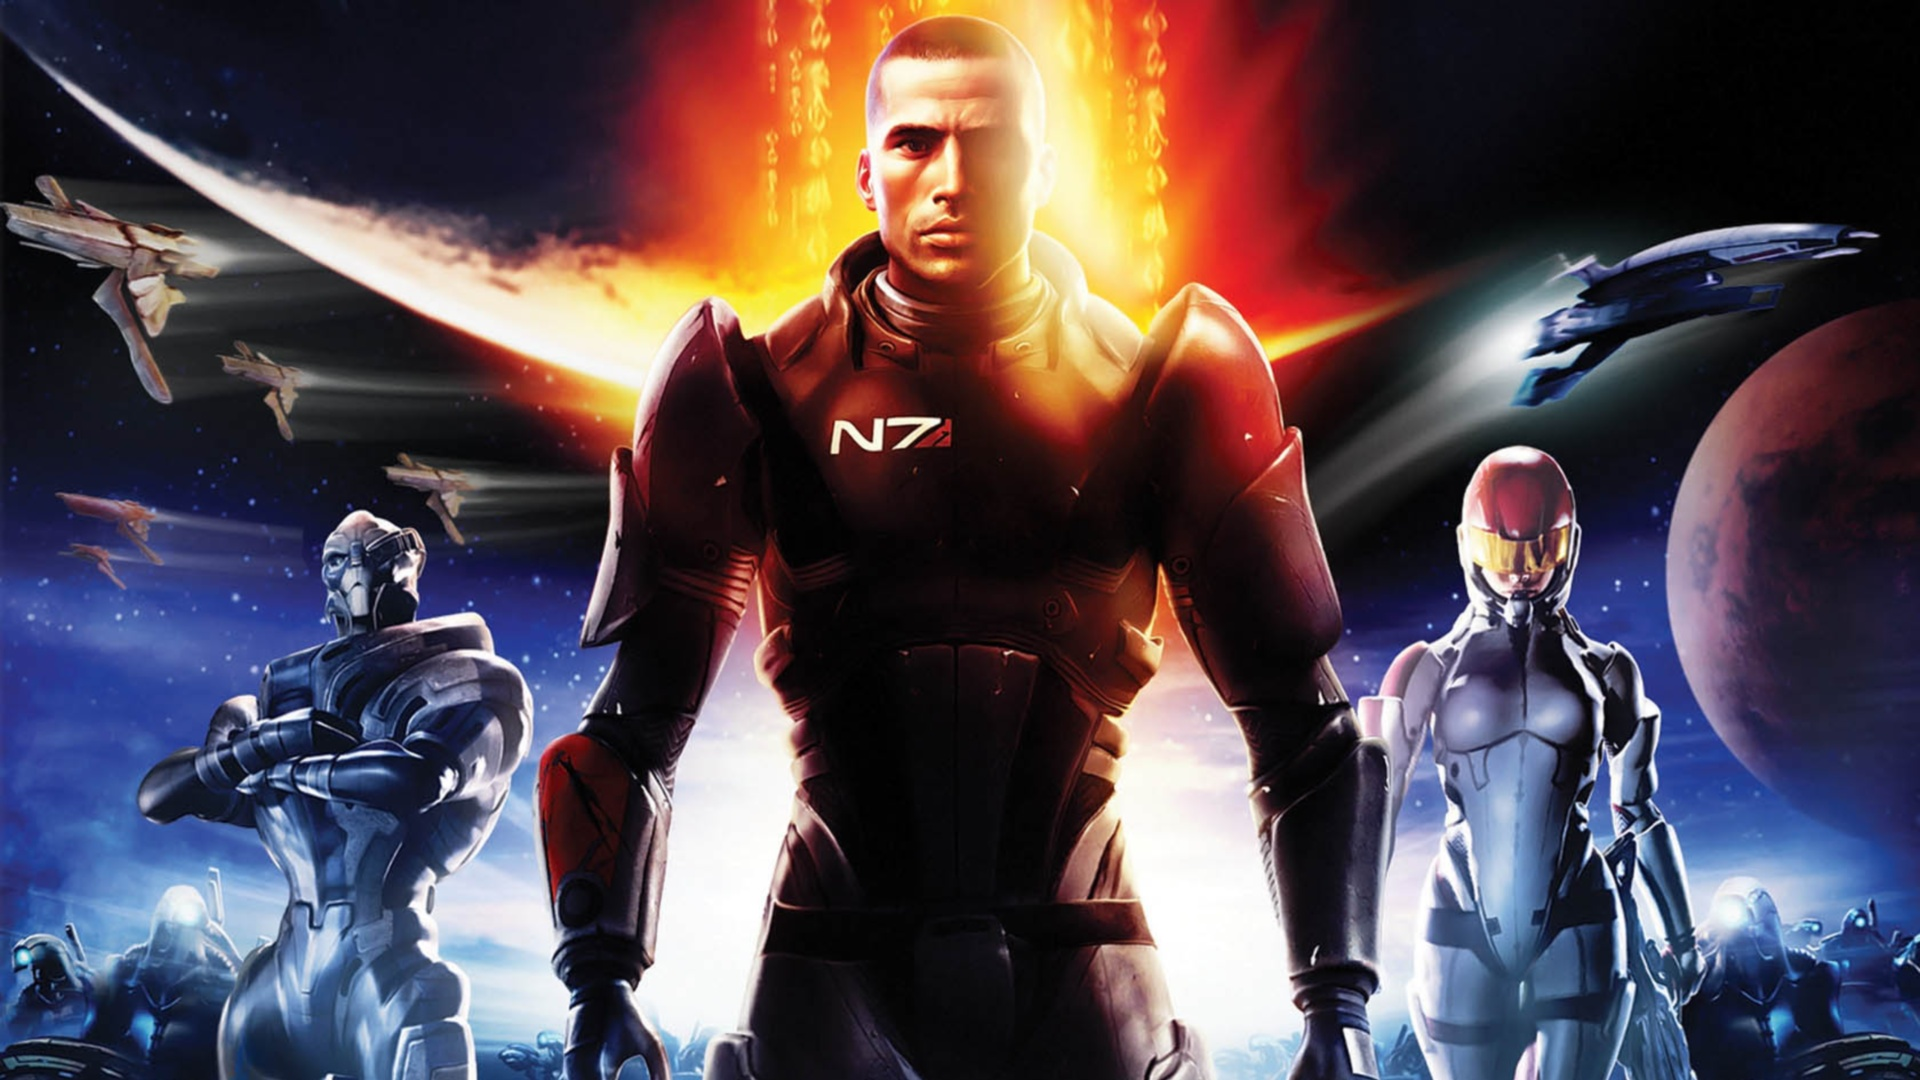 BlurryPhoenix Reflects: Mass Effect